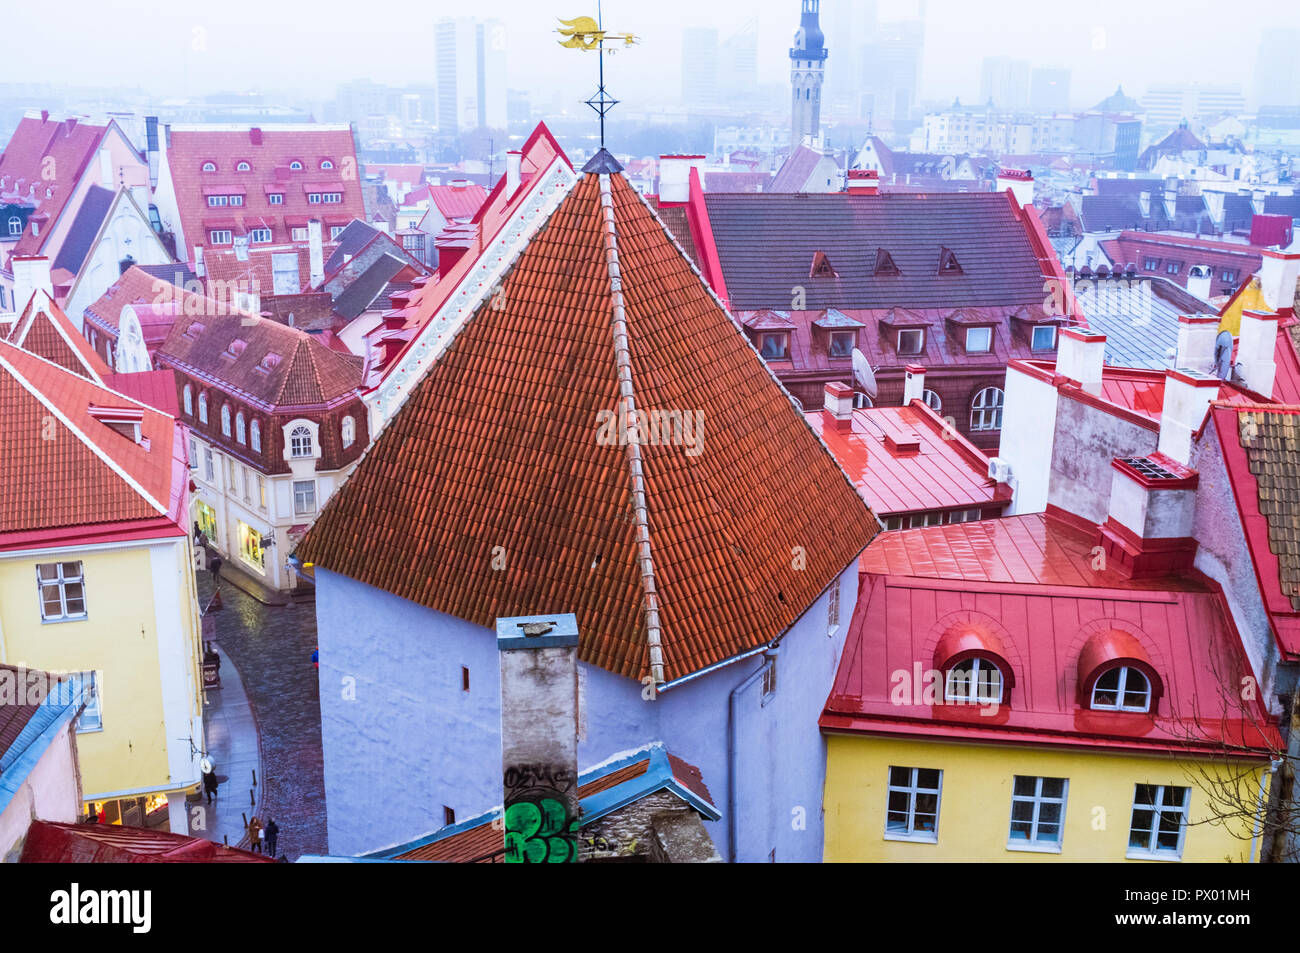 Tallinn, Estonia : High angle view of the roofs of the townhouses of the Old Town. - Stock Image